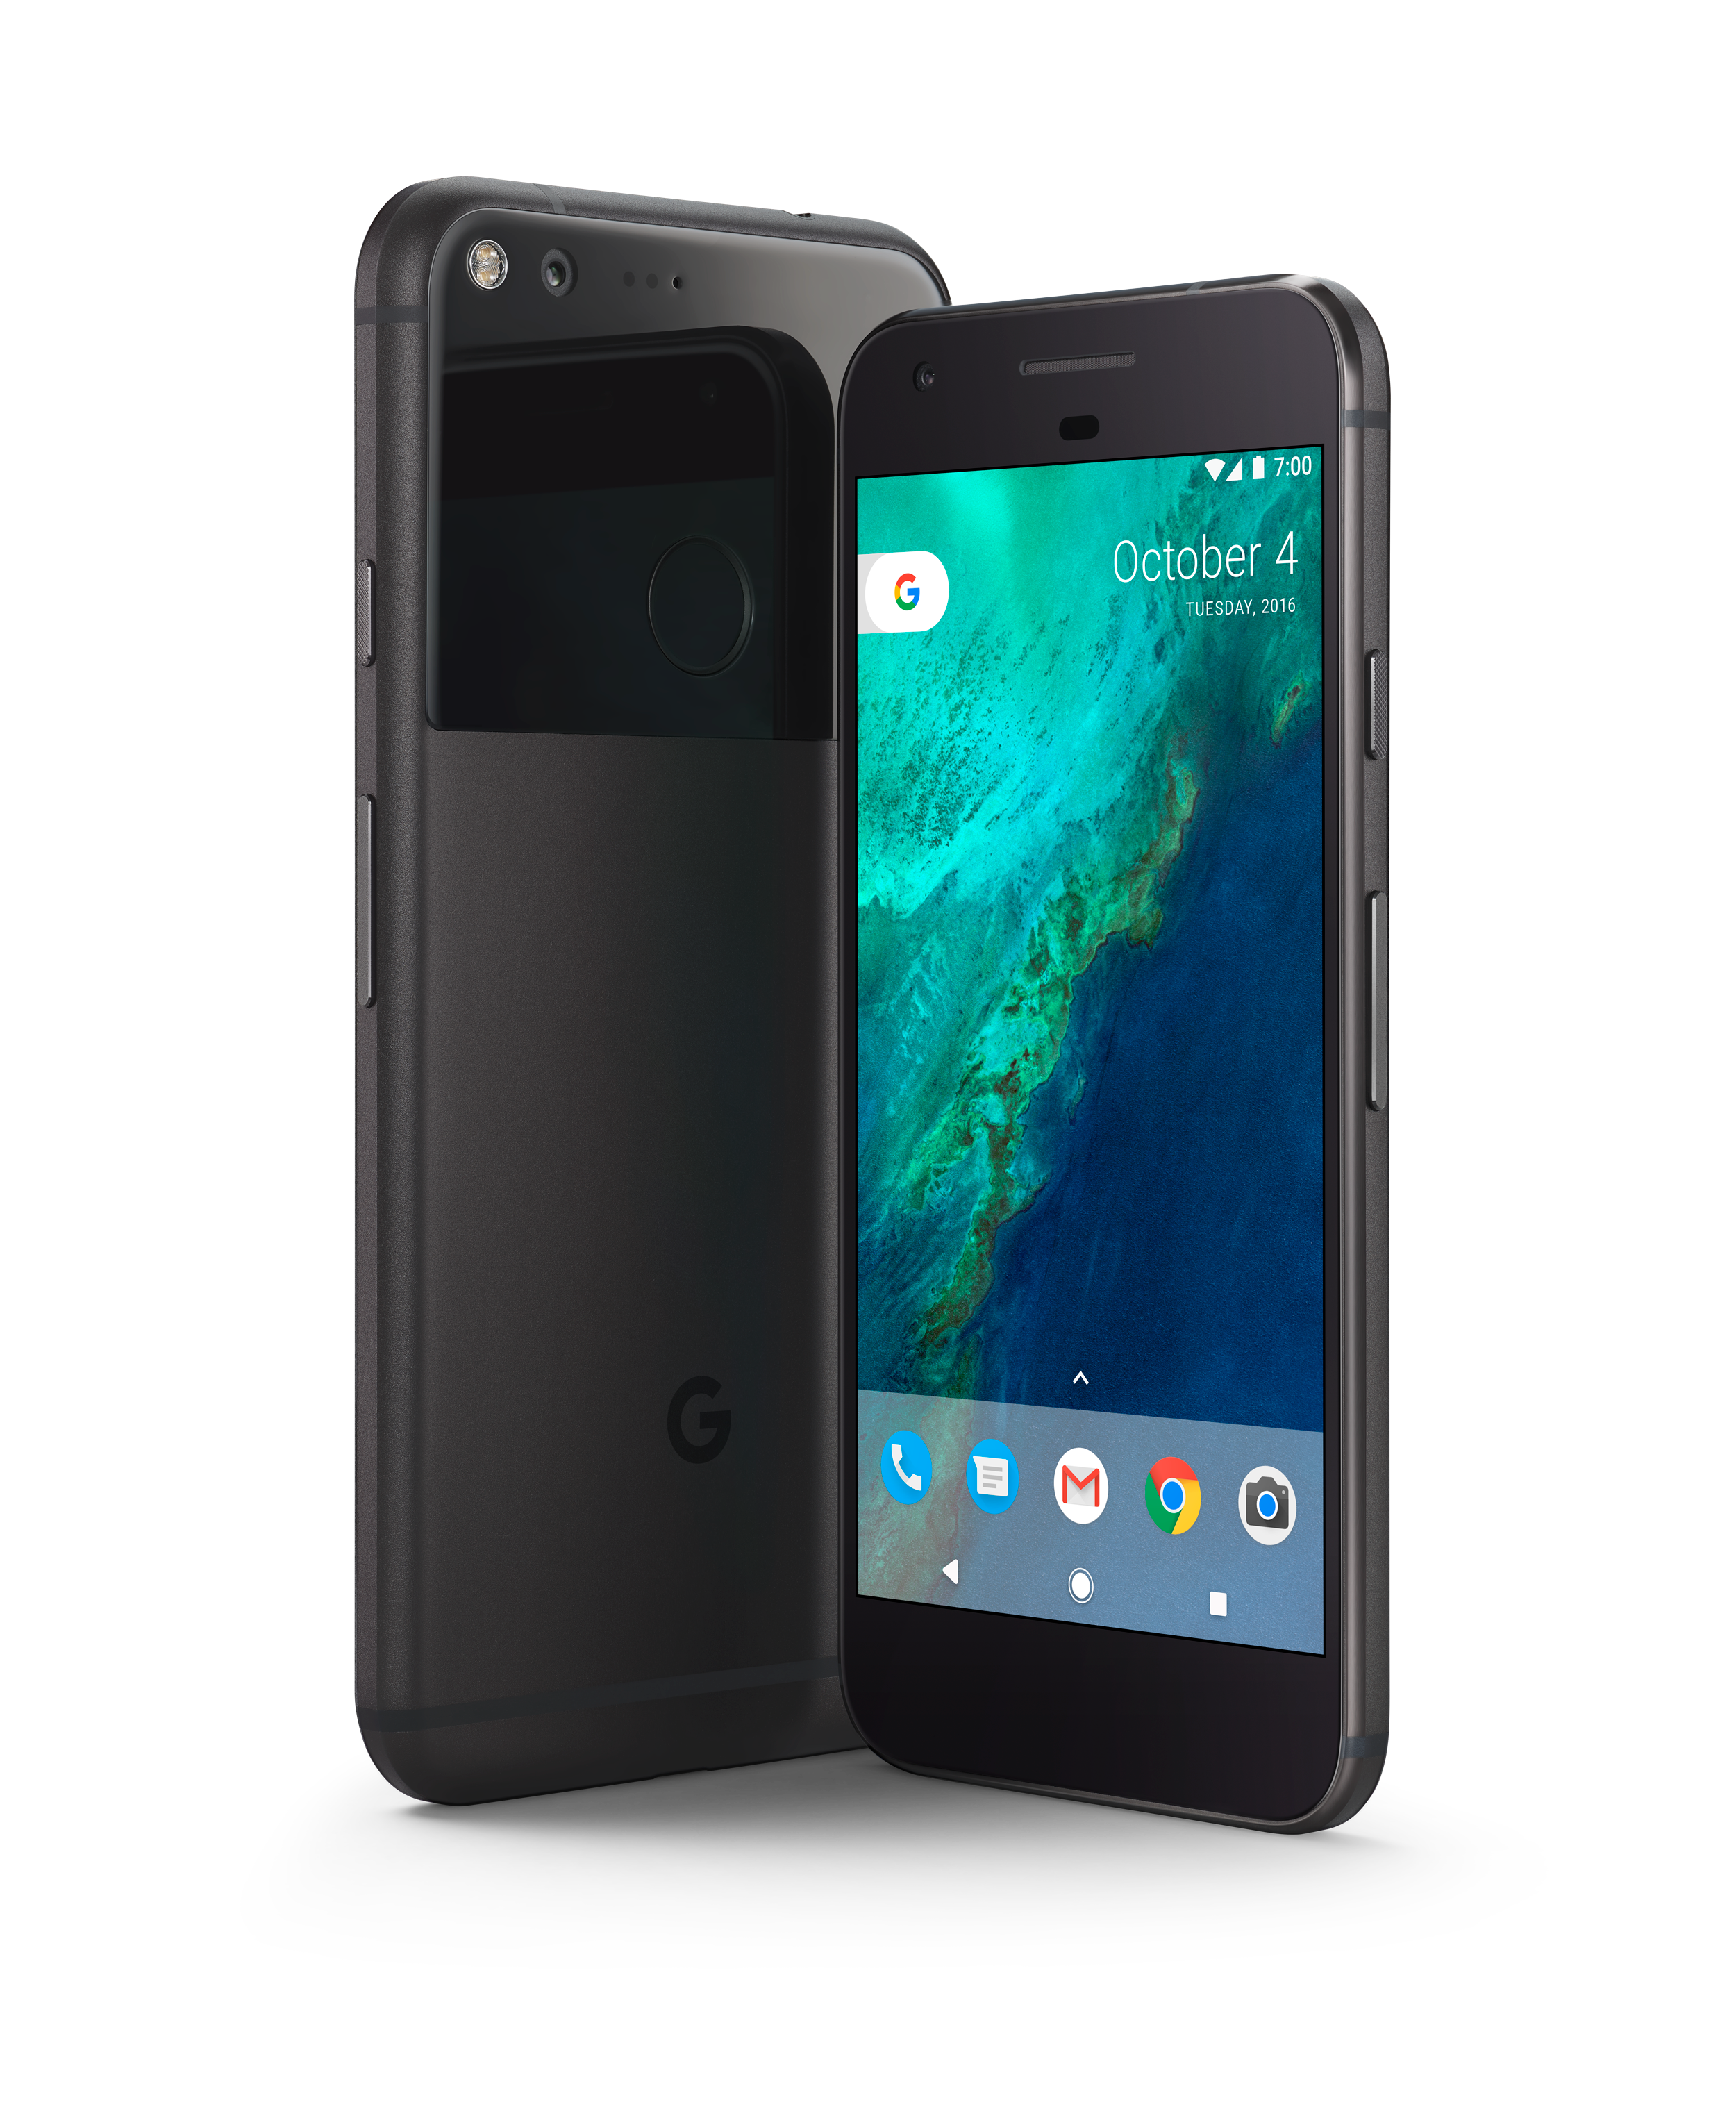 Poll Do you like the design of the new Pixel phones